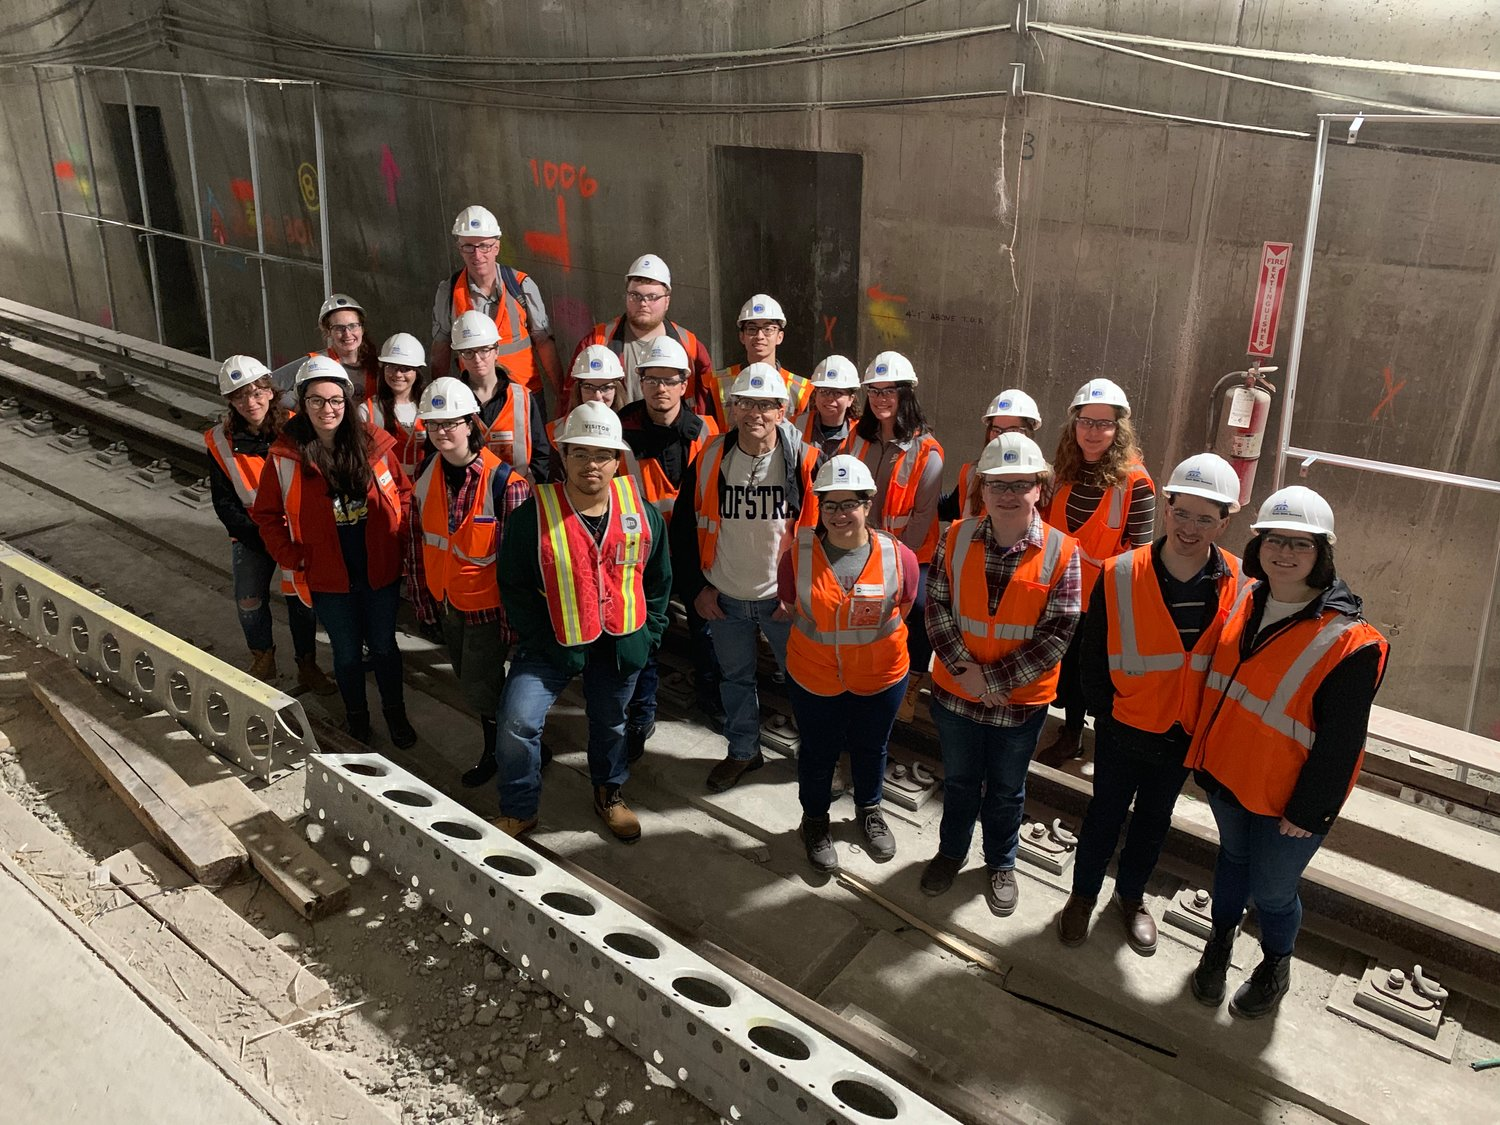 Students and school officials from Hofstra University took part in the tour.